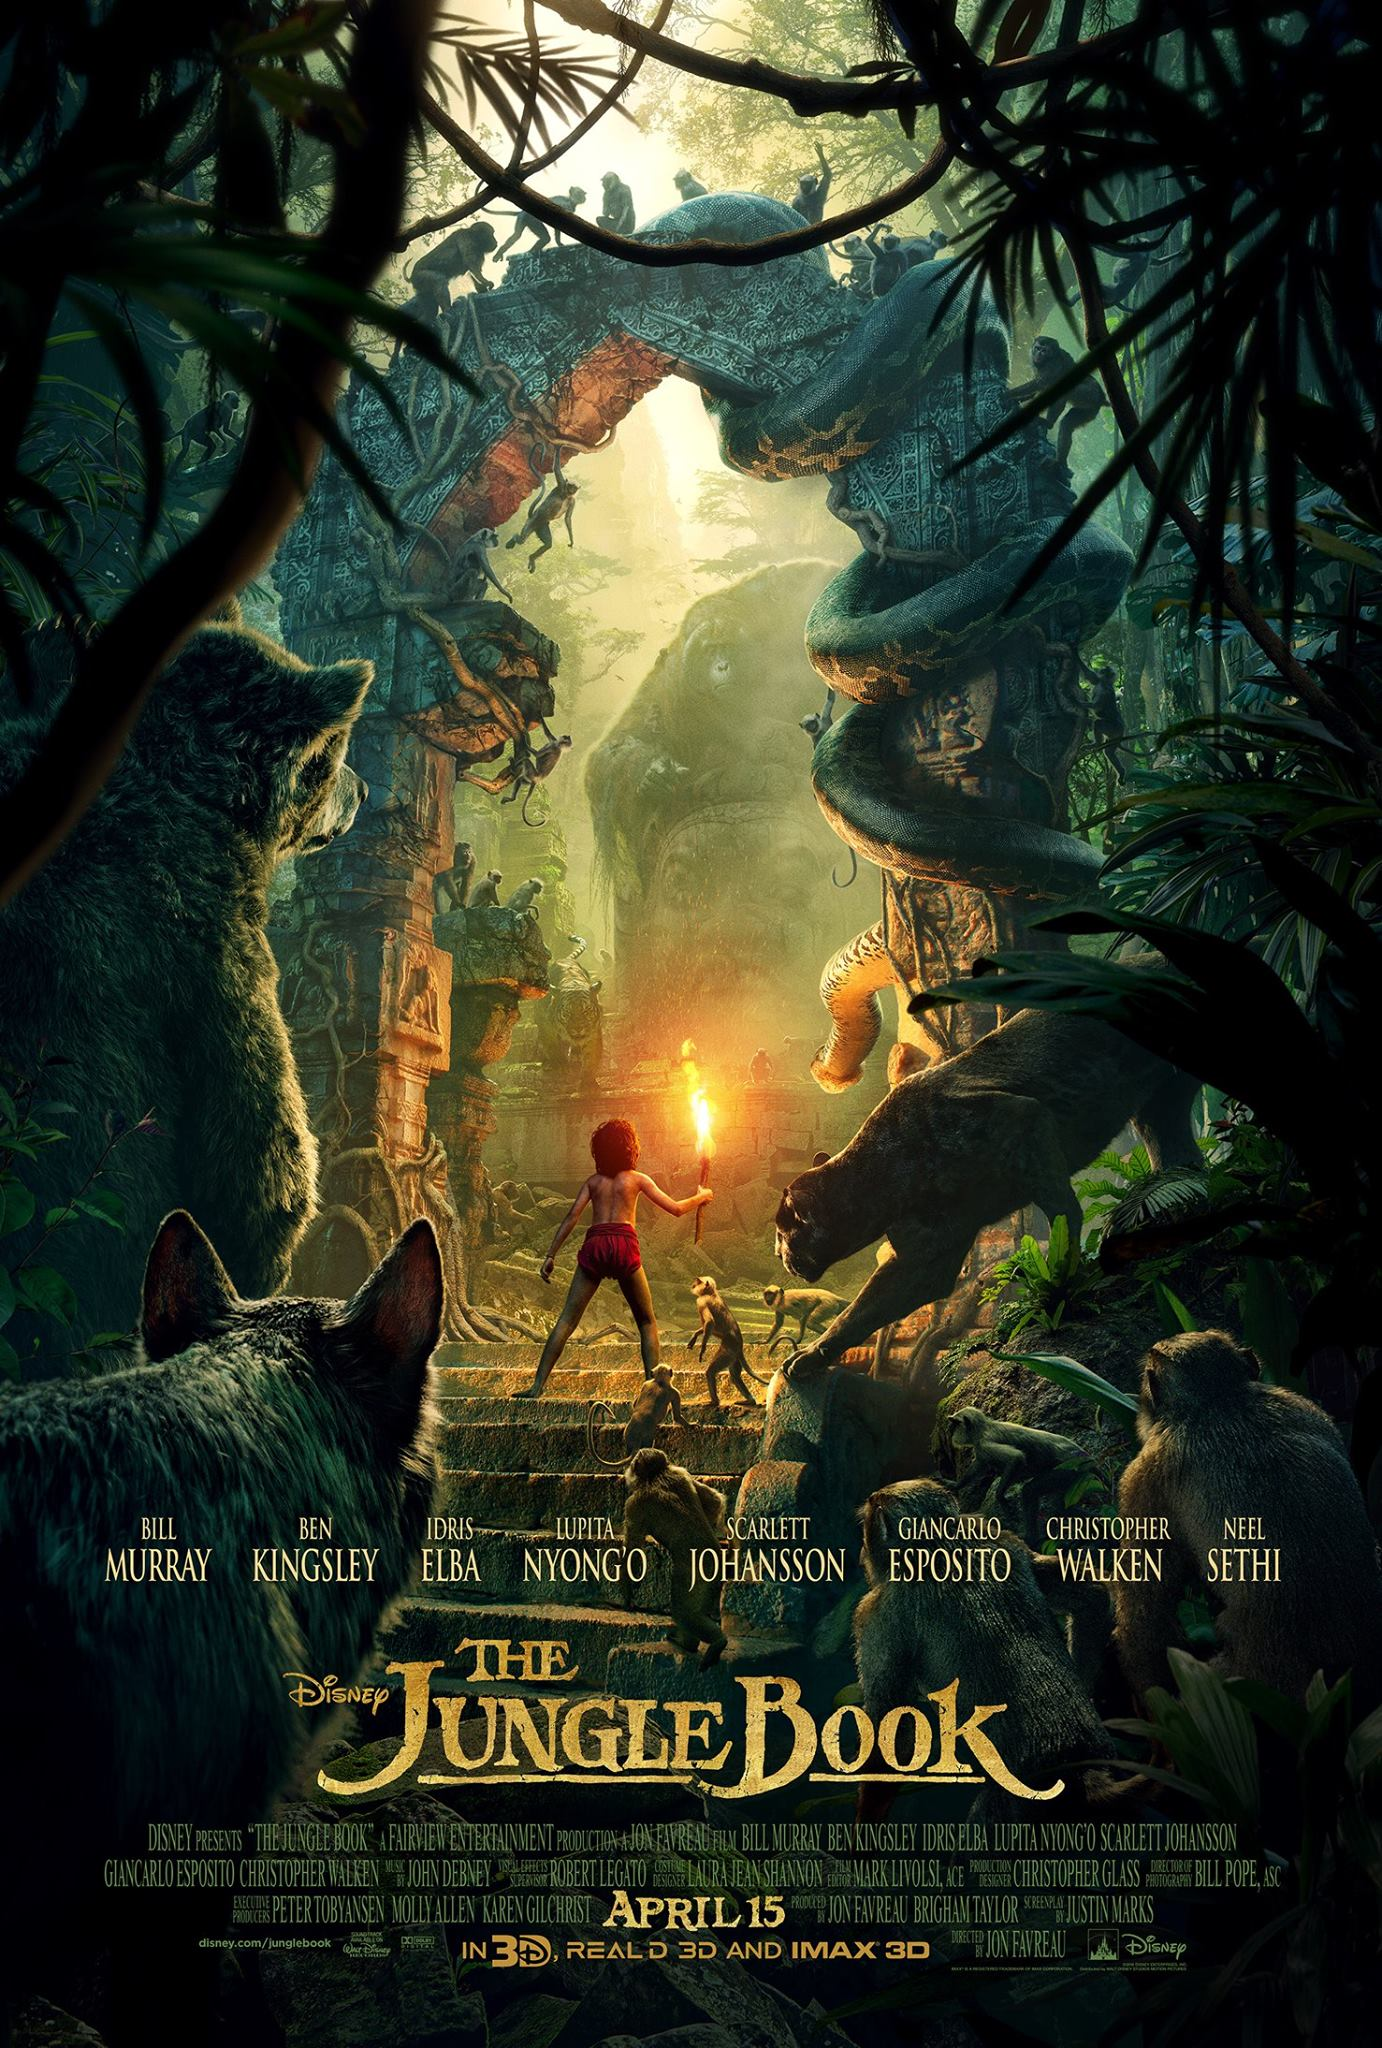 walt disney pictures le livre de la jungle book film affiche poster